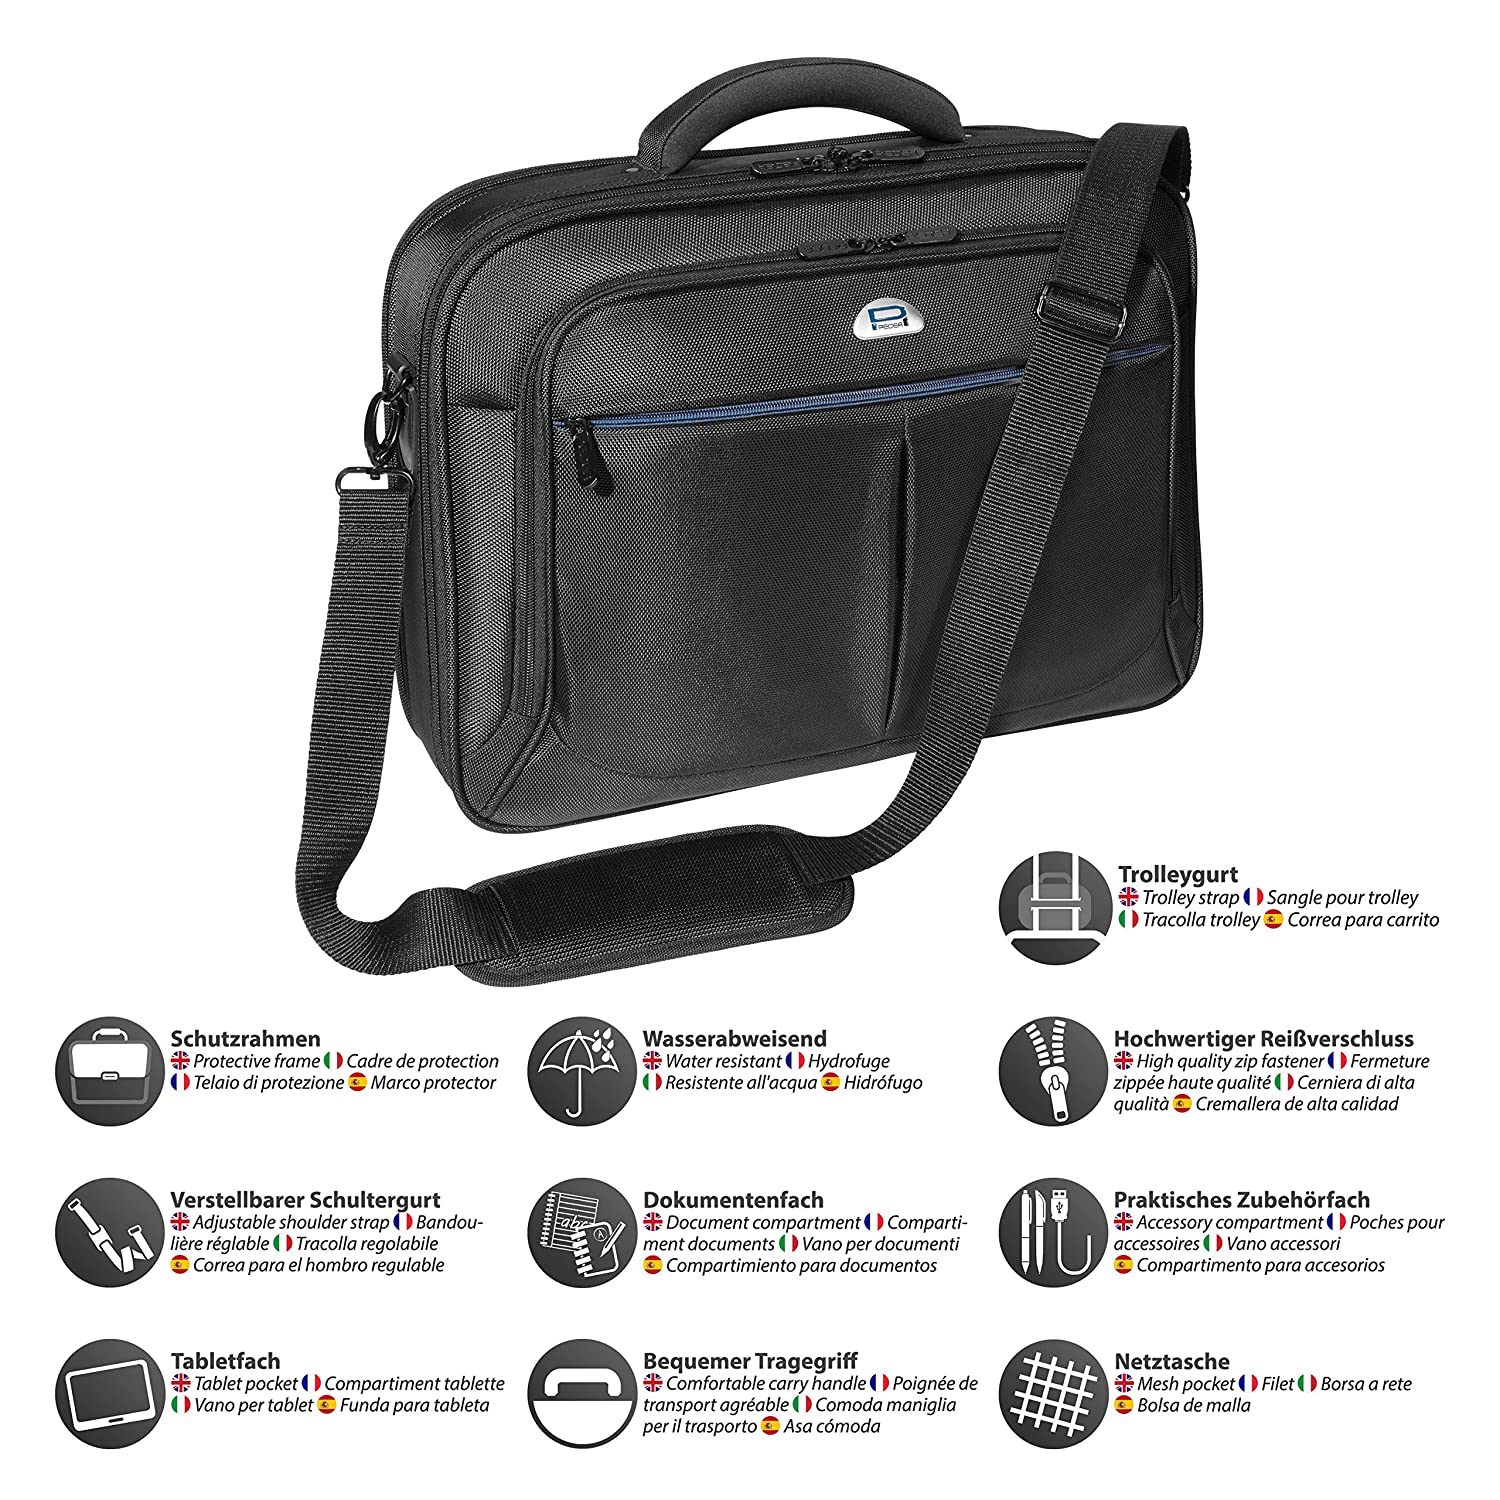 8a947935cf PEDEA Borsa per laptop 15,6 pollici (39,6 cm), nero con scomparto per  tablet: Amazon.it: Informatica